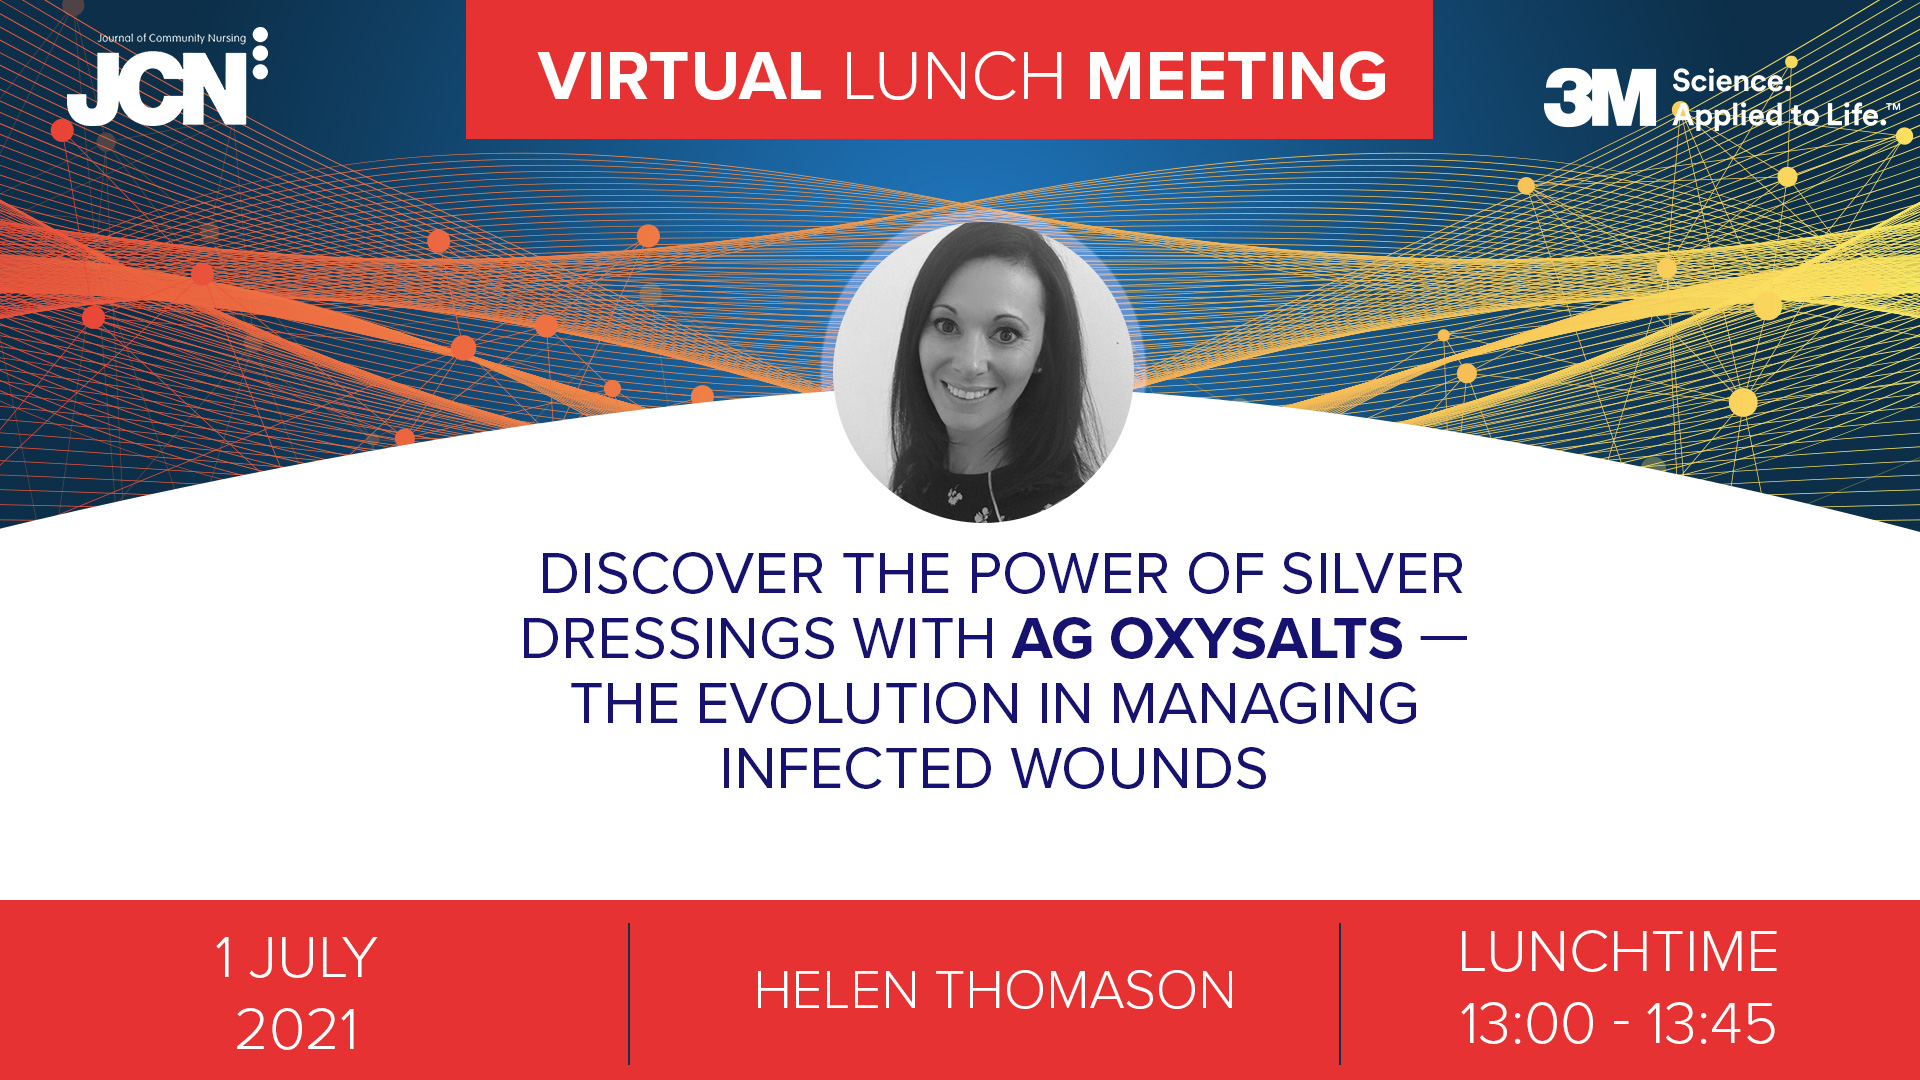 Virtual Lunch Meeting: Discover the power of silver dressings with Ag Oxysalts - the evolution in managing infected wounds